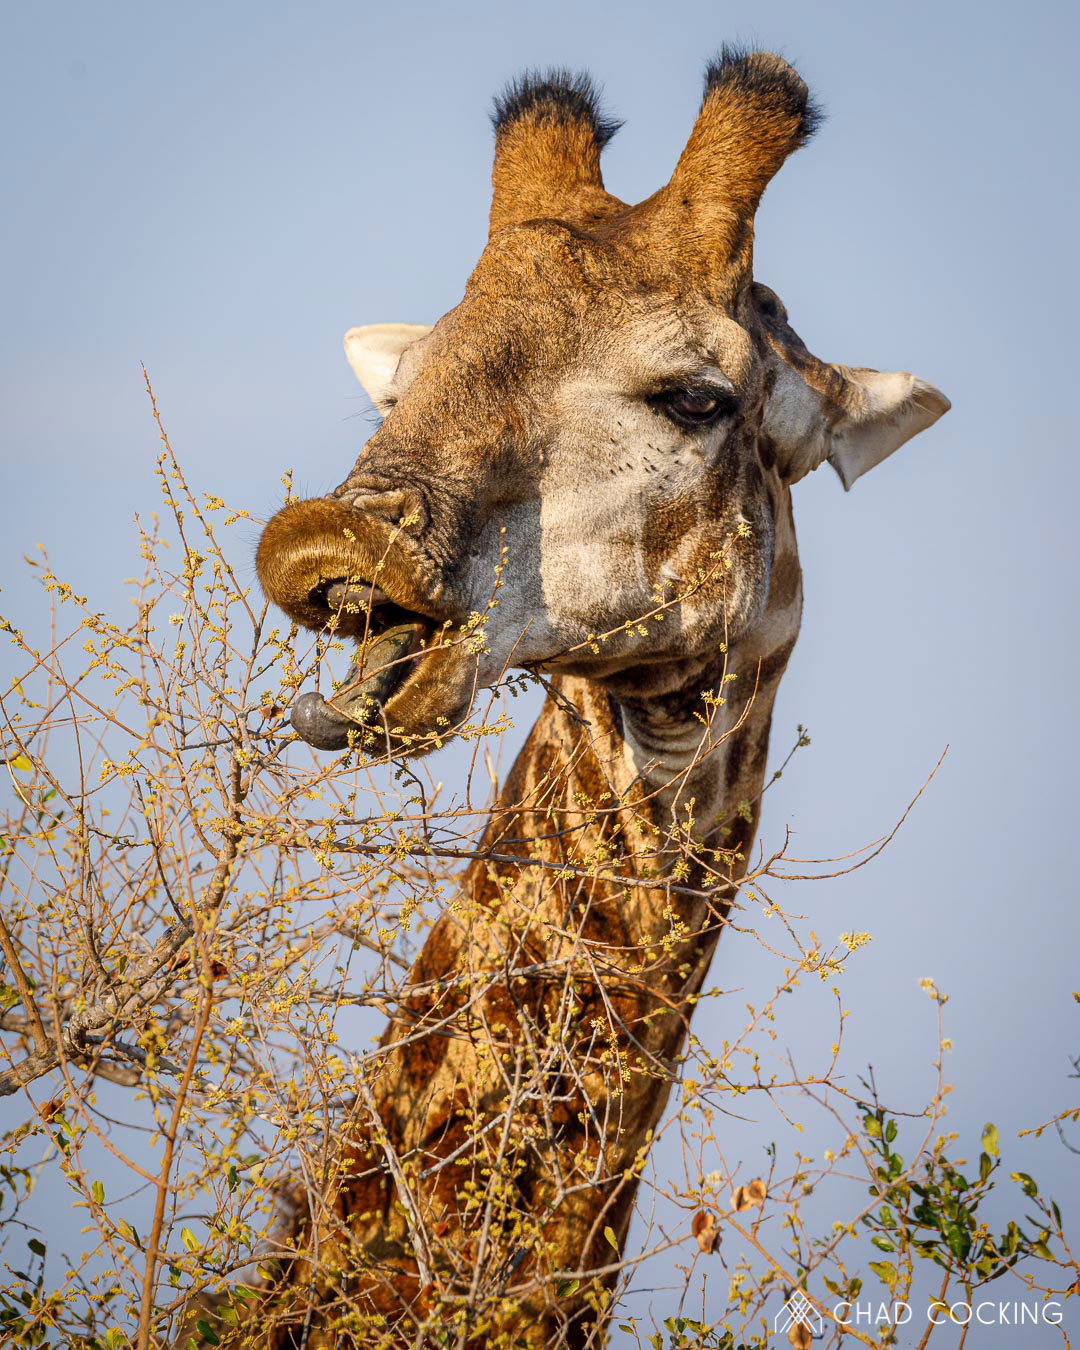 Tanda Tula - giraffe eating in the Greater Kruger, South Africa